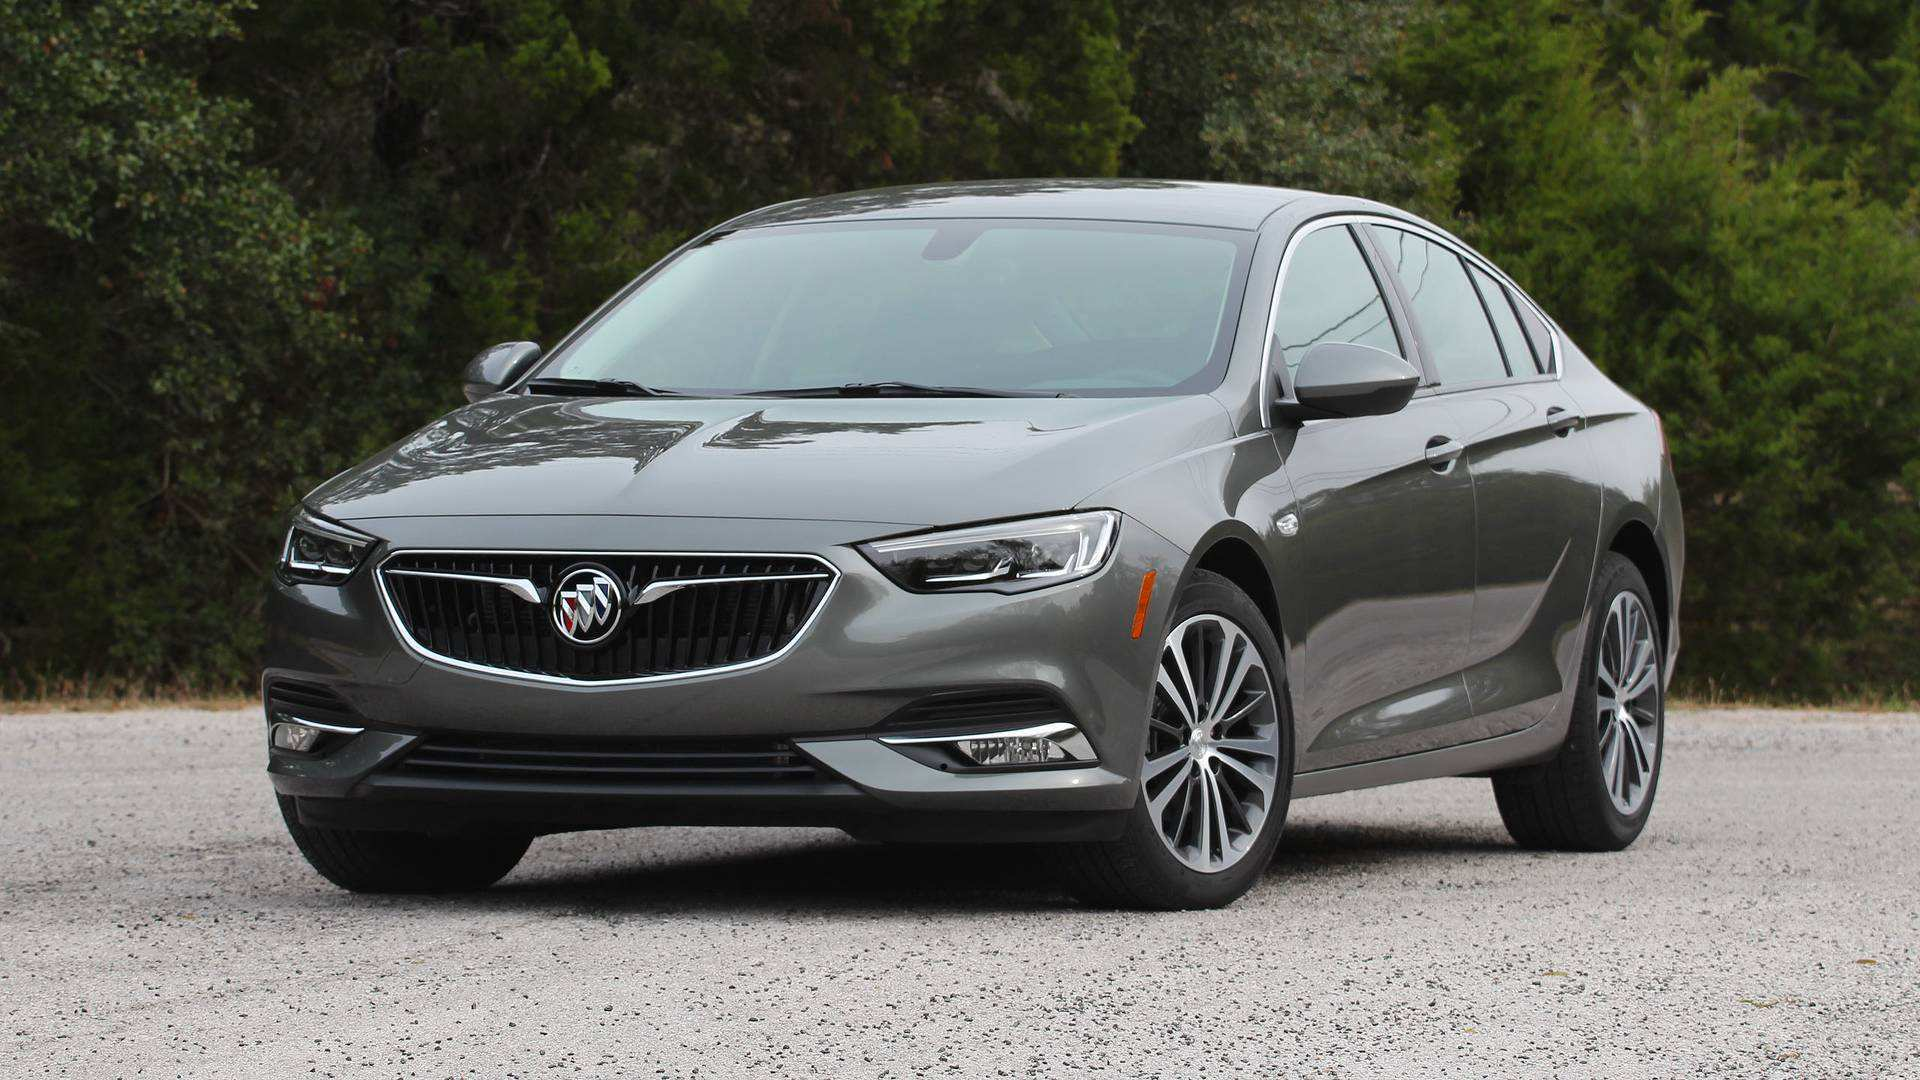 41 The 2019 Buick Regal Picture